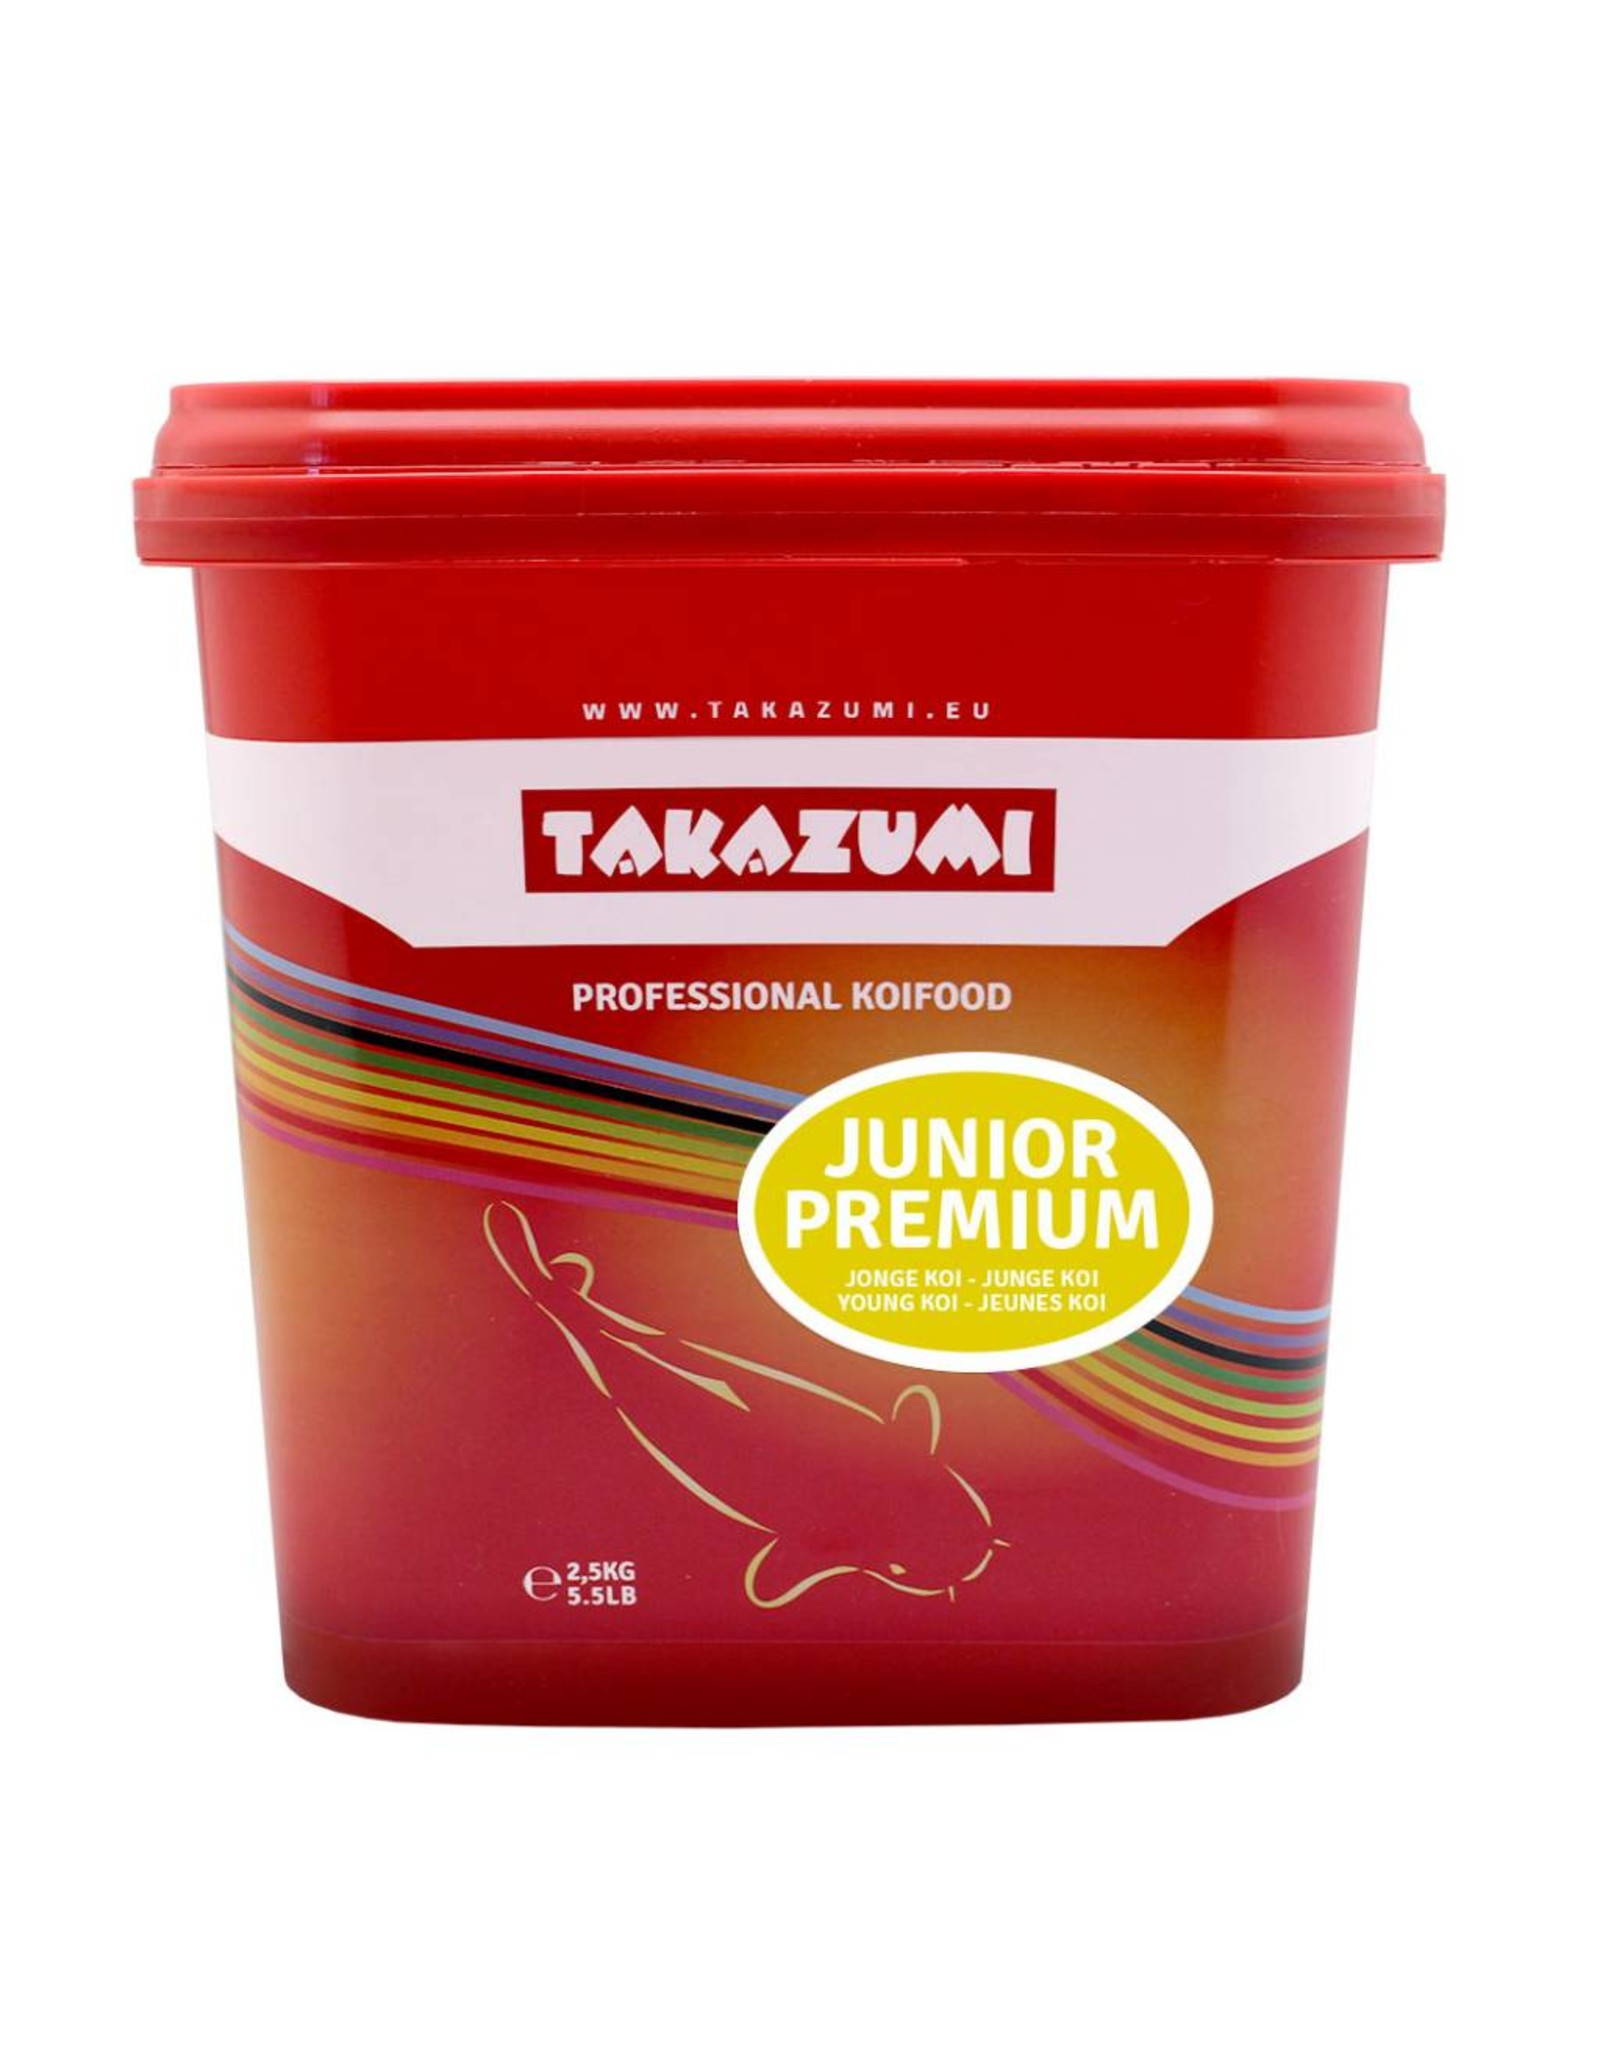 Takazumi Junior Premium